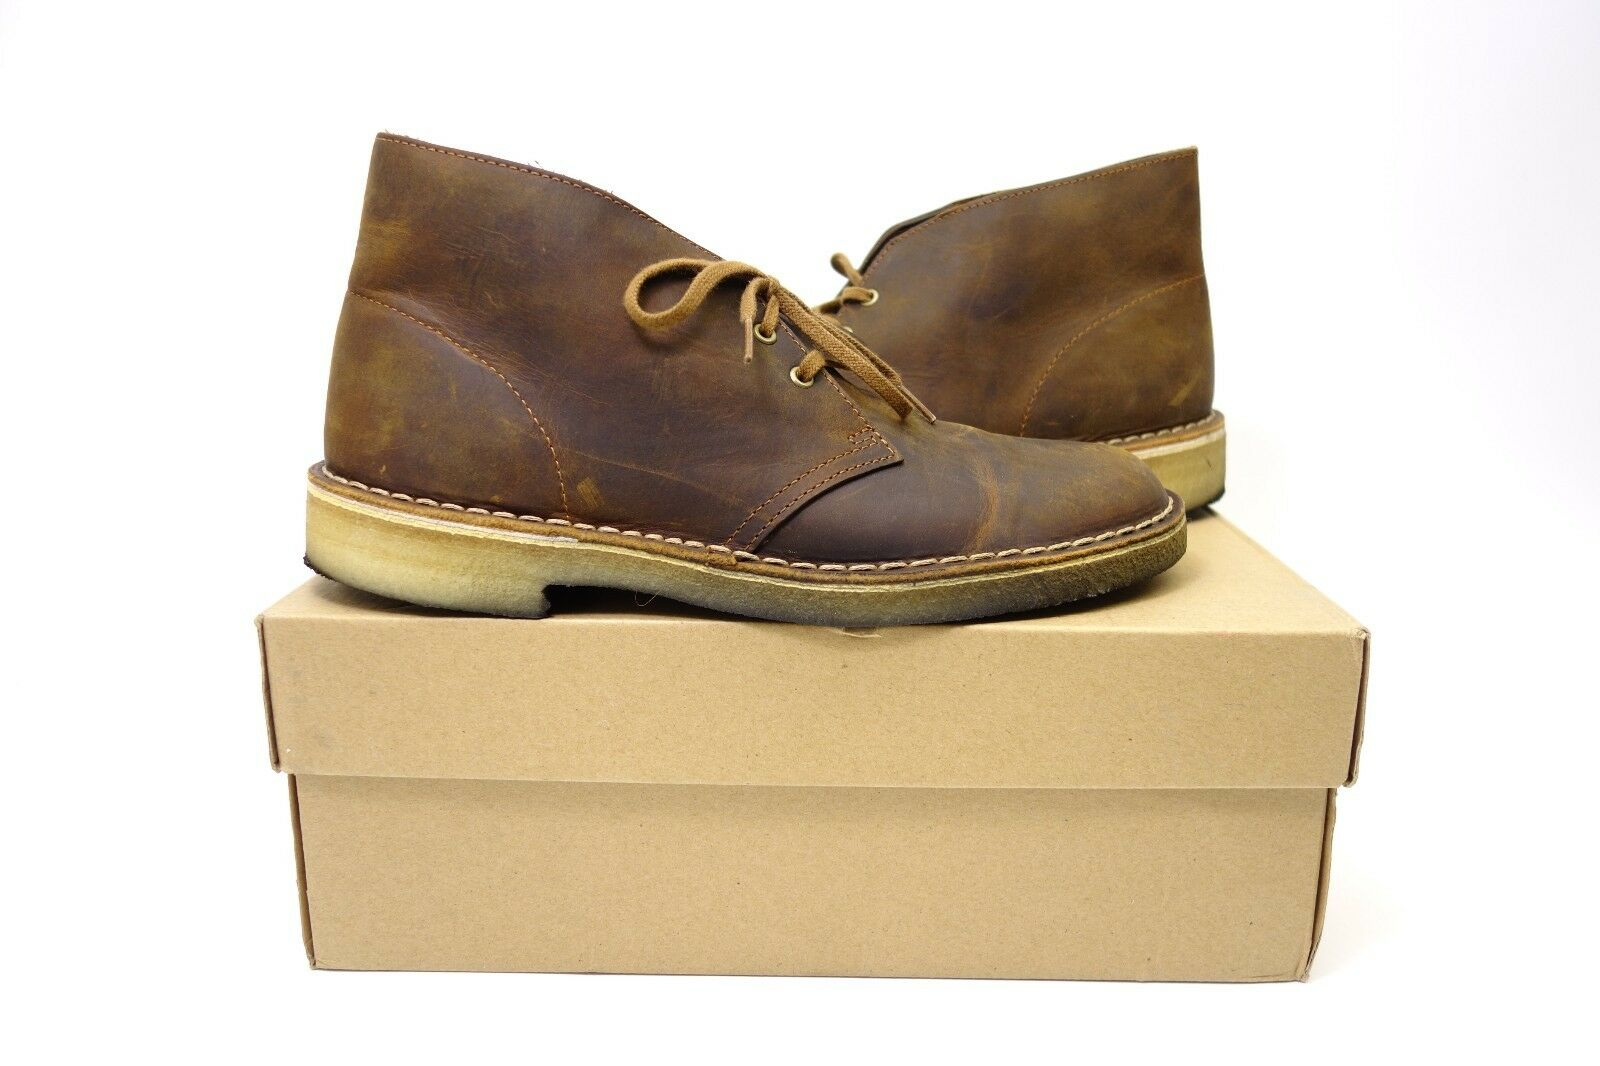 Pre-Owned Clarks Originals Uomo Brown Beeswax Jaune Miel Casual Desert Boots 12